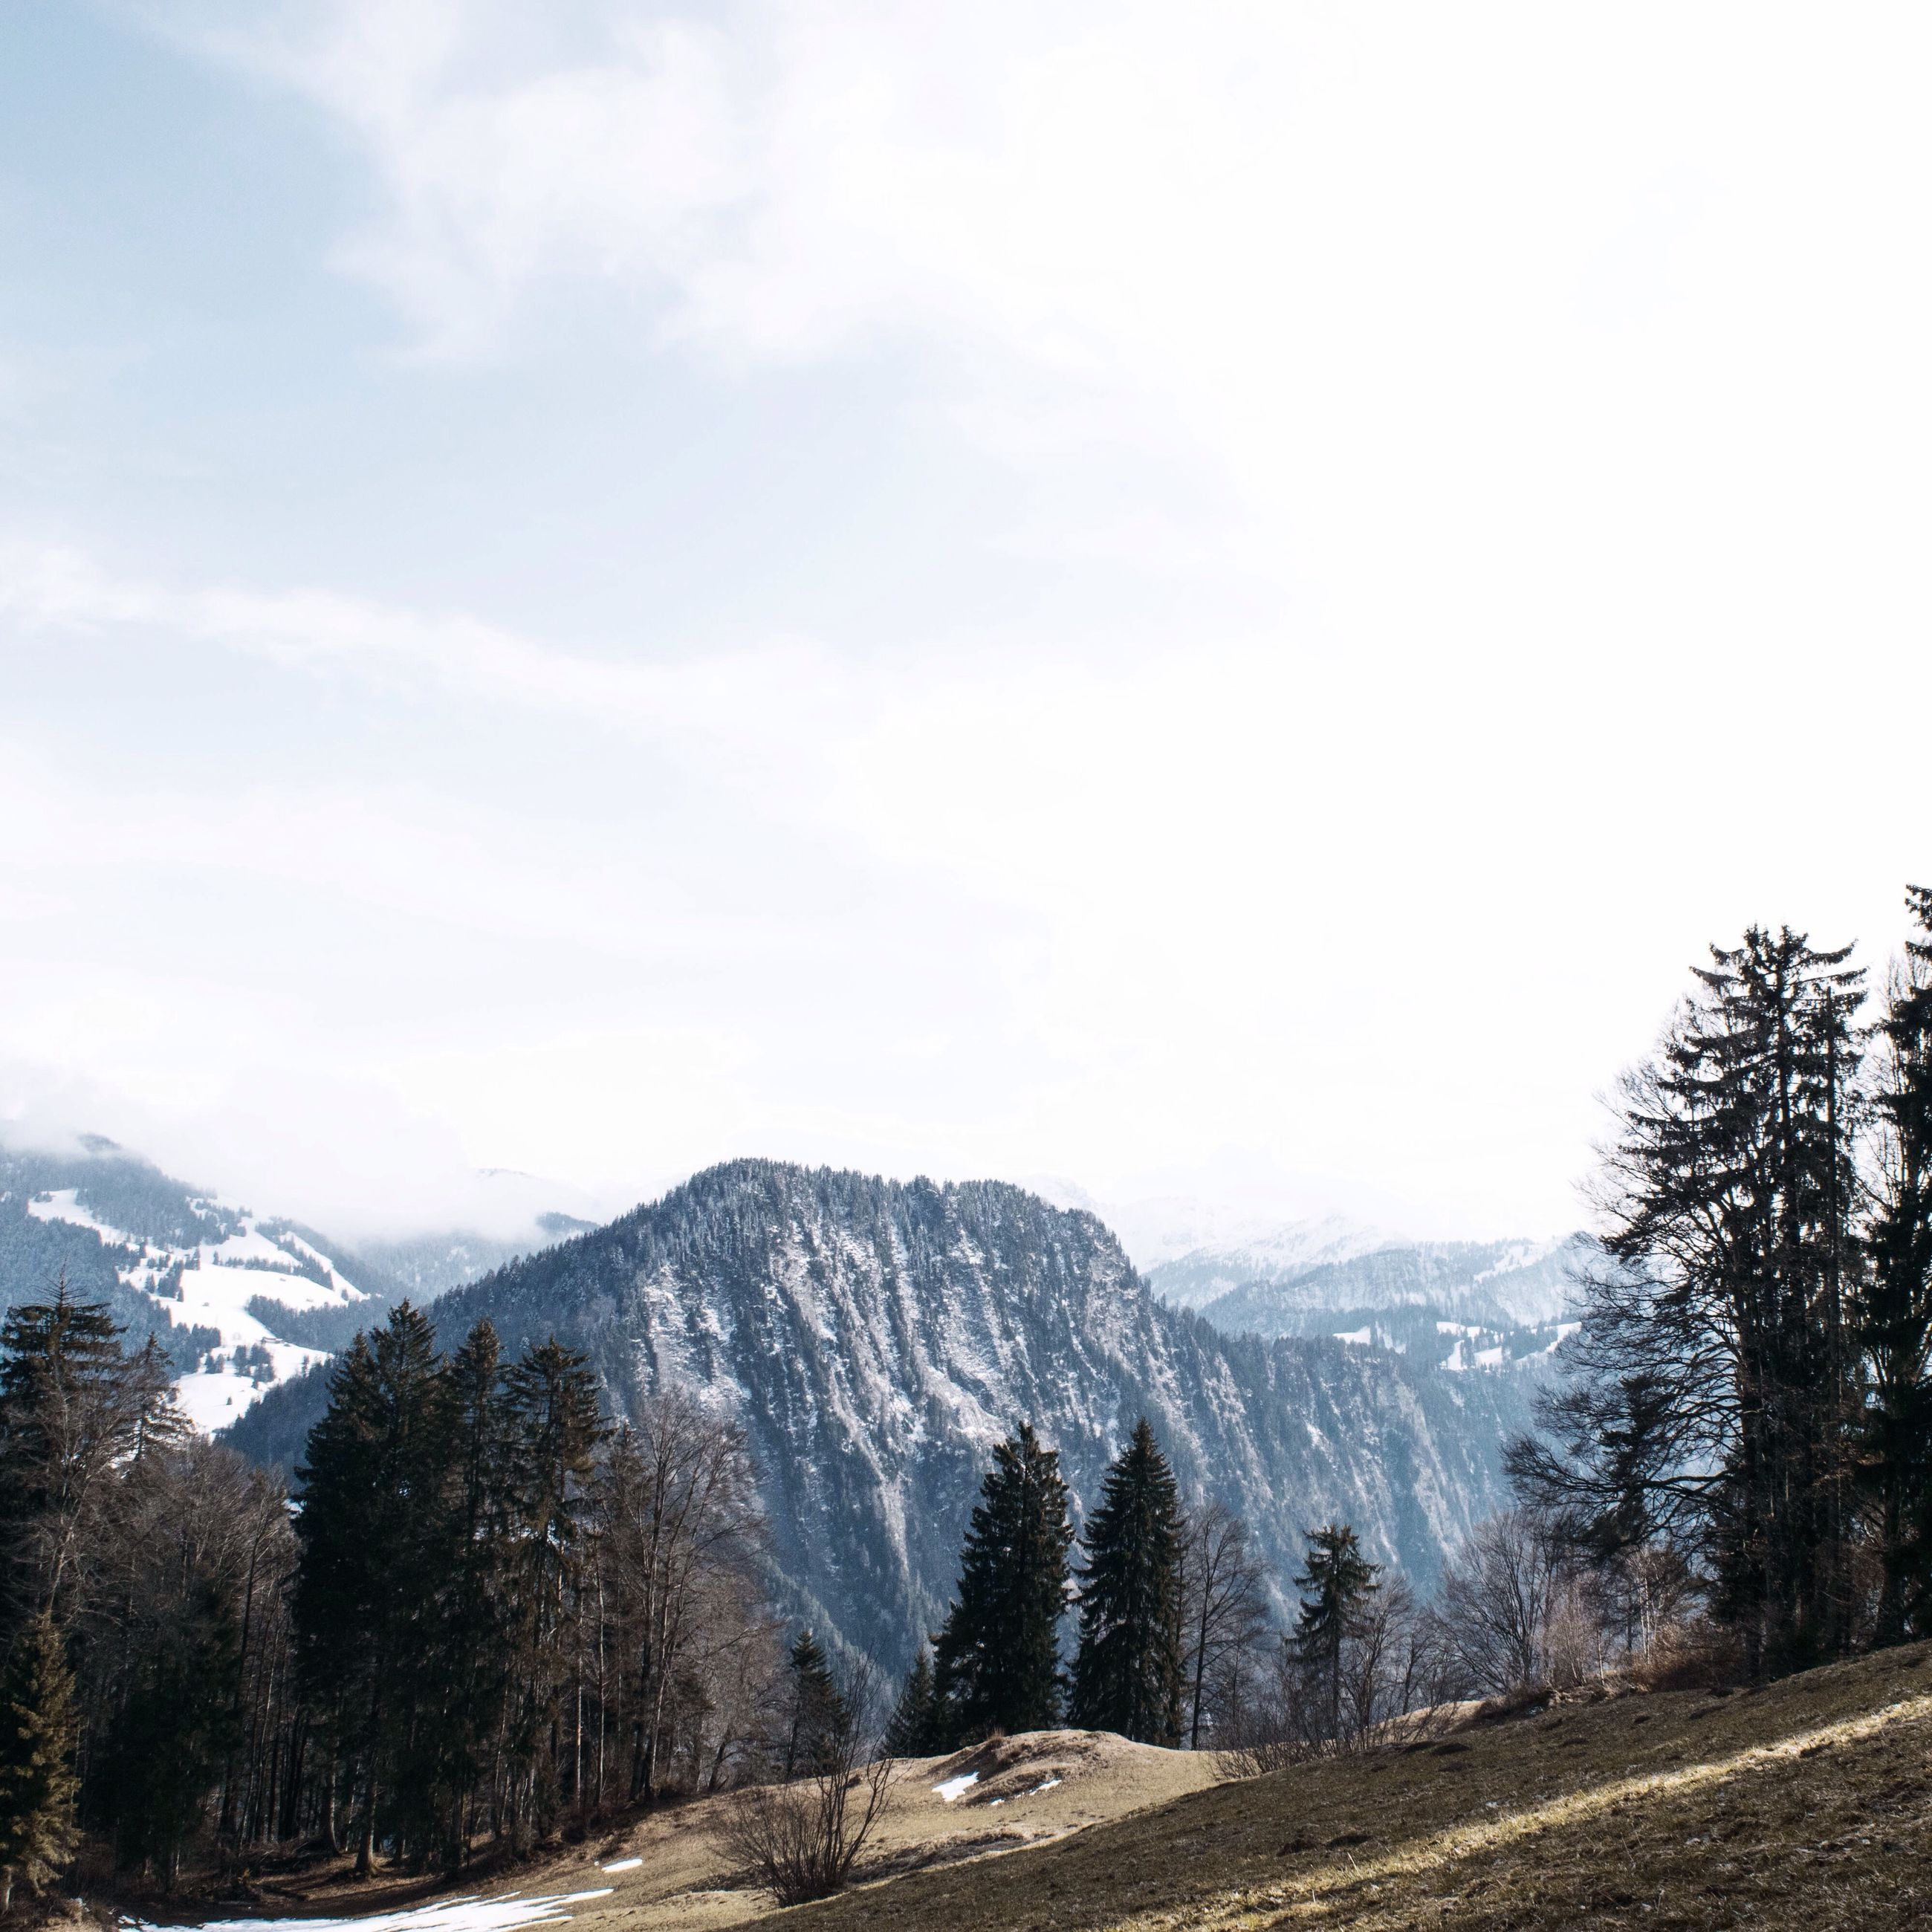 mountain, tranquil scene, tranquility, scenics, mountain range, beauty in nature, landscape, sky, nature, non-urban scene, tree, remote, idyllic, day, outdoors, non urban scene, physical geography, rock - object, no people, cloud - sky